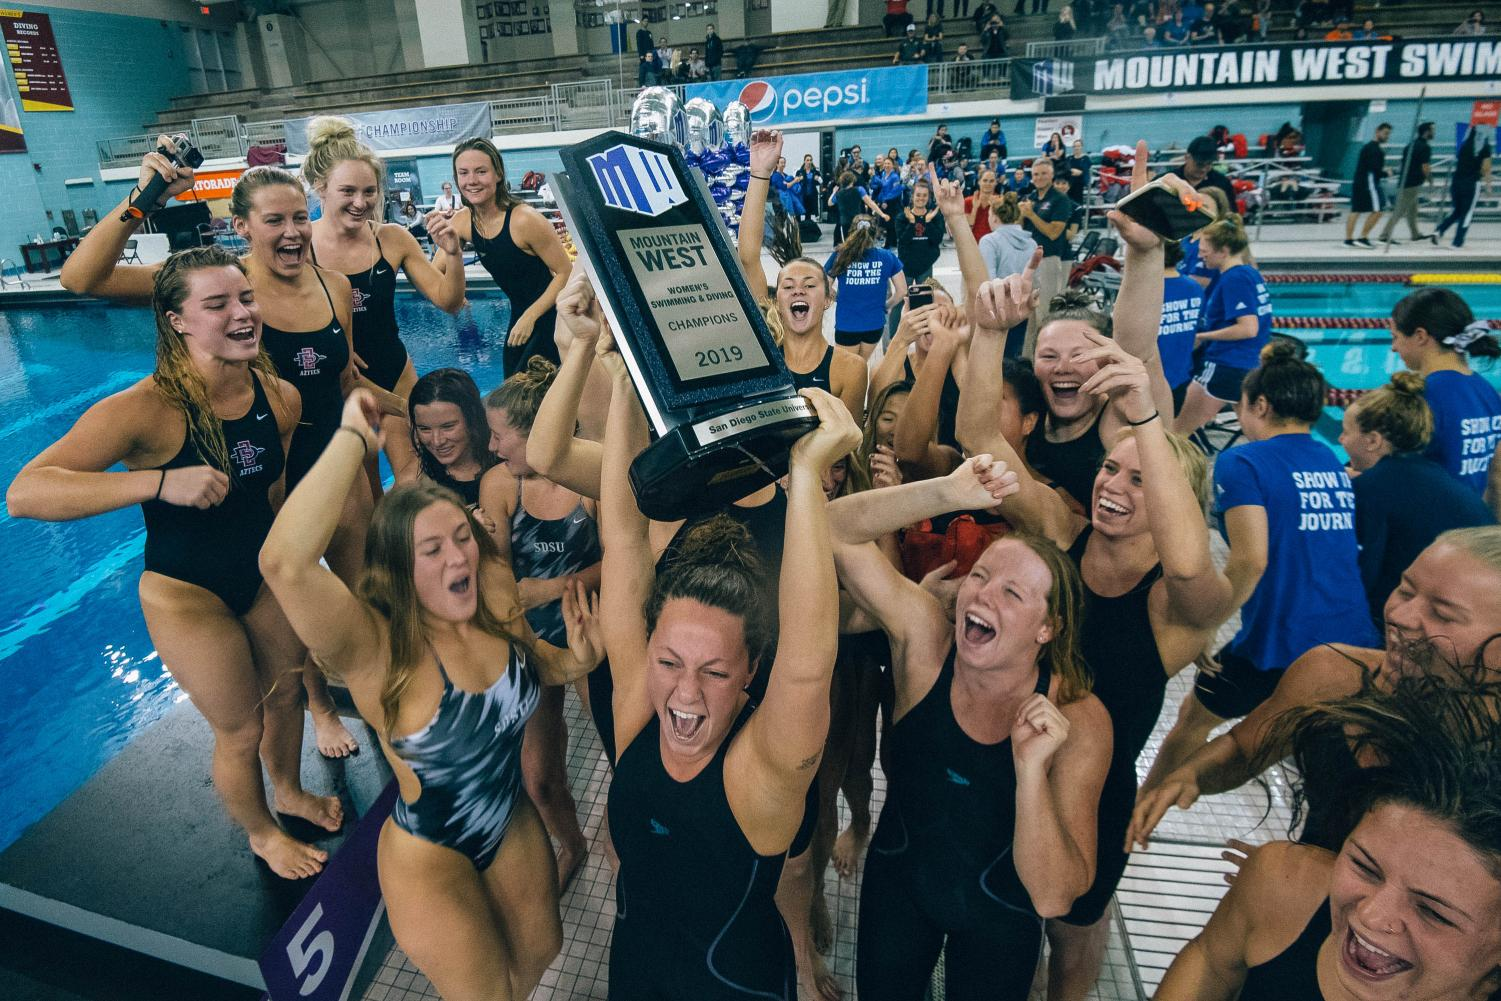 The Aztecs hoist up the Mountain West Championship trophy on Feb. 23 at the Jean K. Freeman Aquatic Center in Minneapolis.